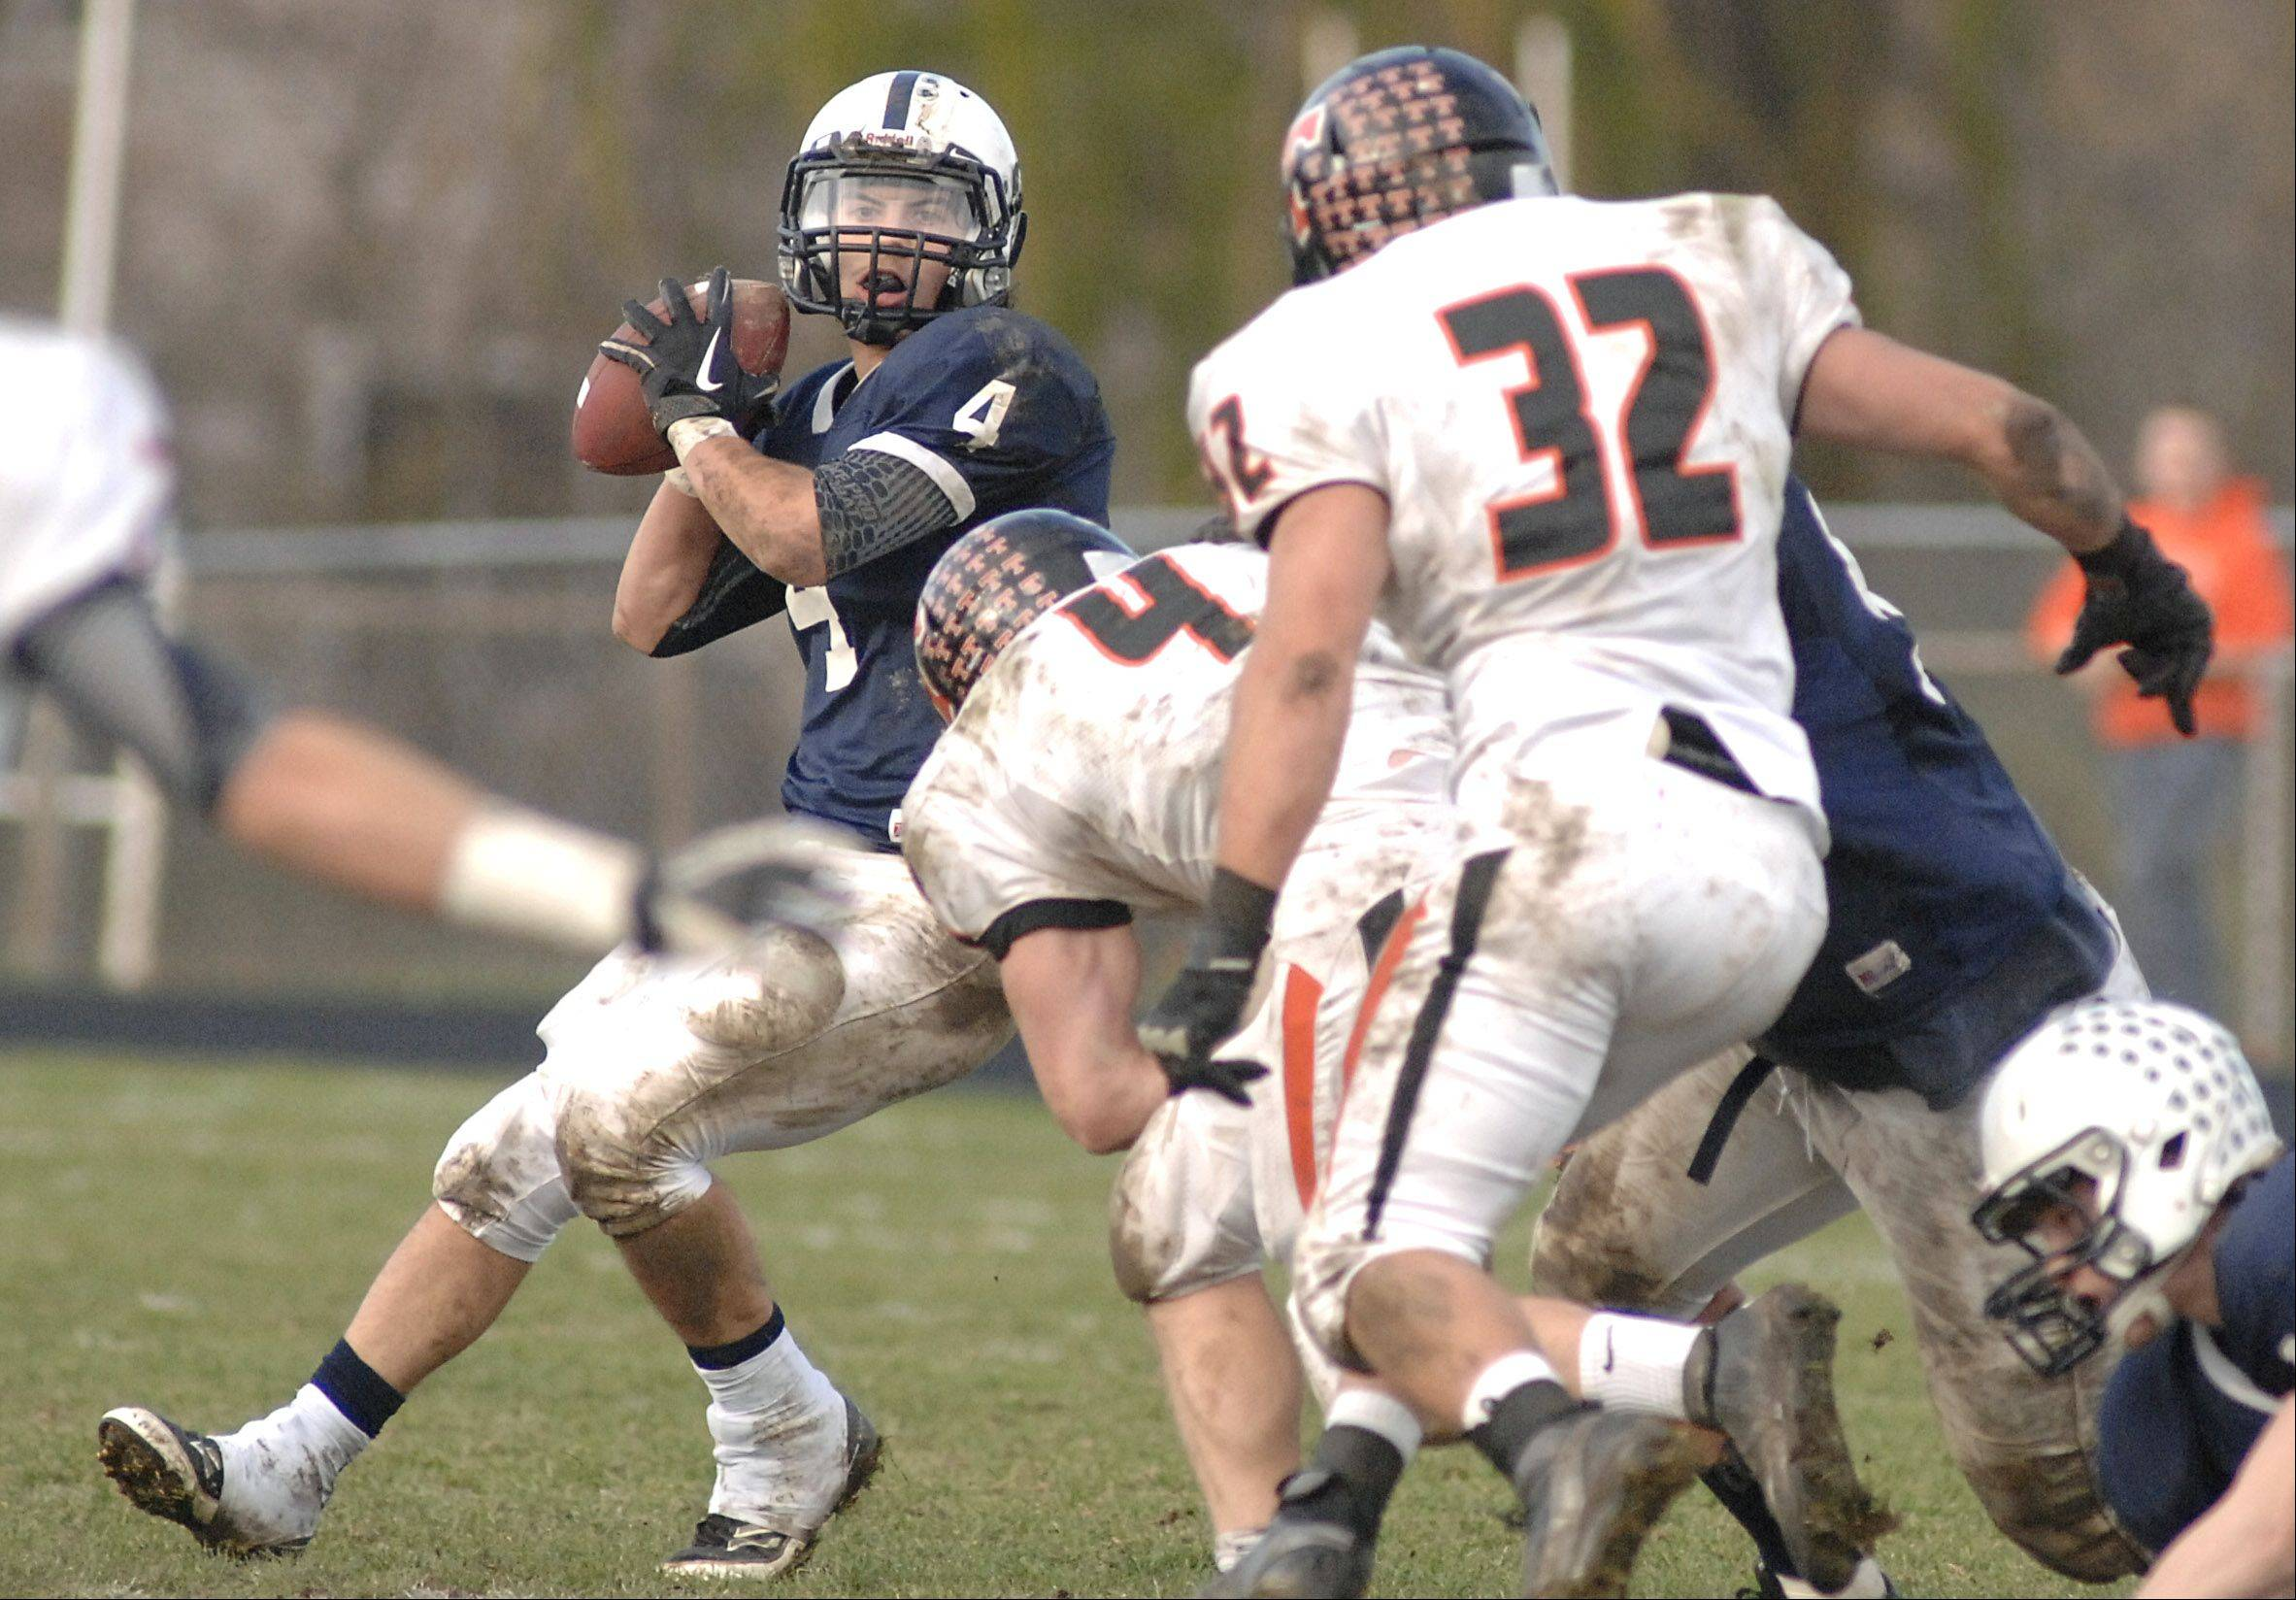 Cary-Grove's Ryan Mahoney readies to pass down the field past Crystal Lake Central in the third quarter on Saturday, November 10.